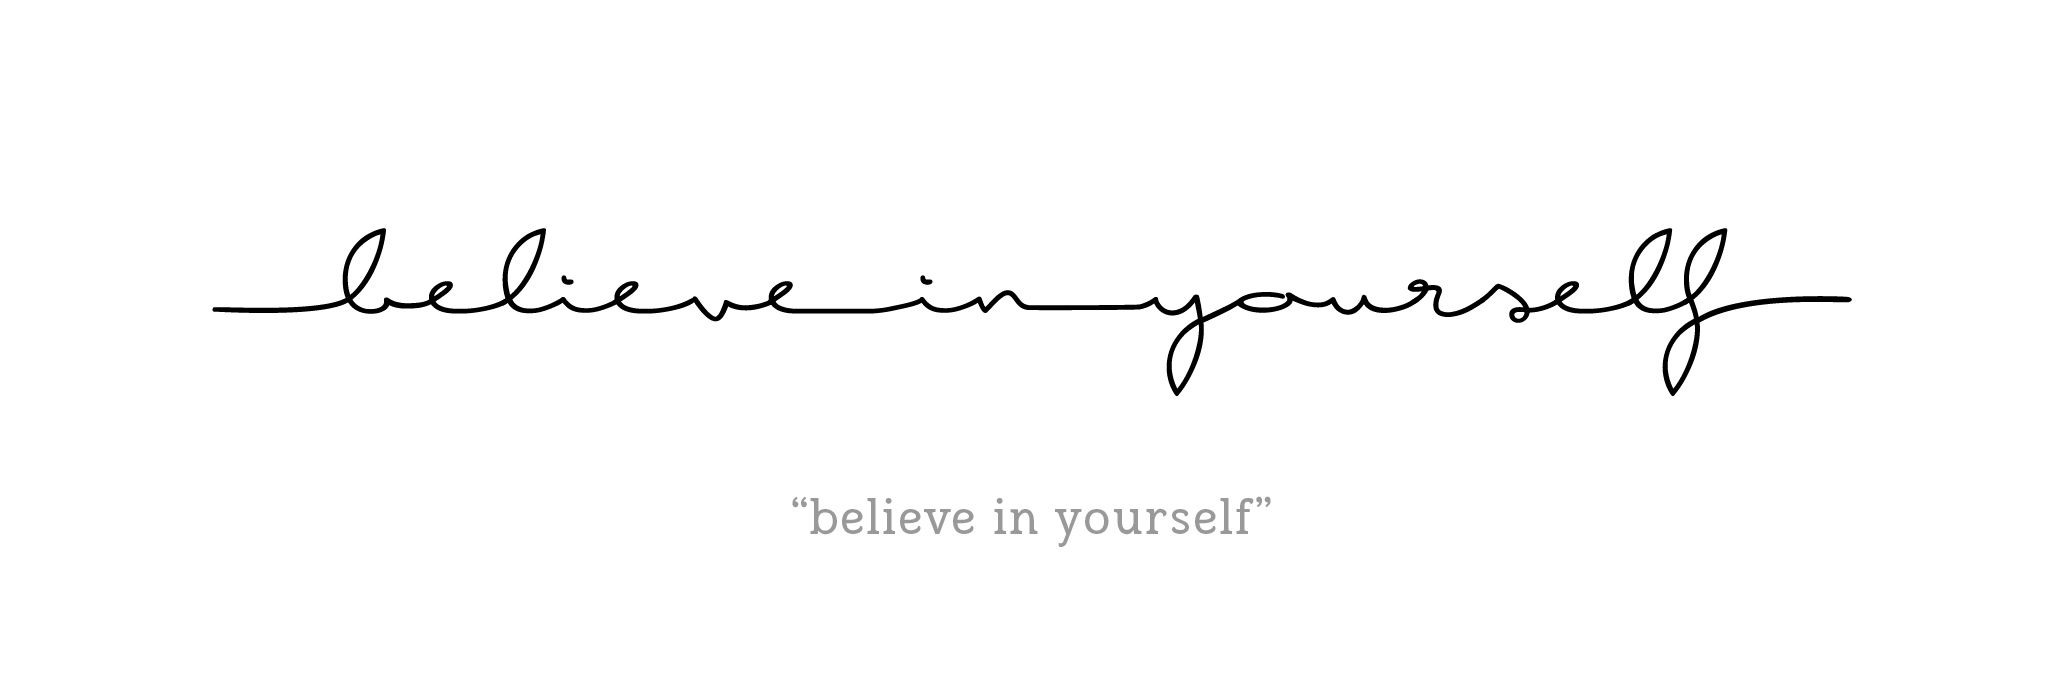 Cursive Tattoo Design Believe In Yourself English Rib Tattoo